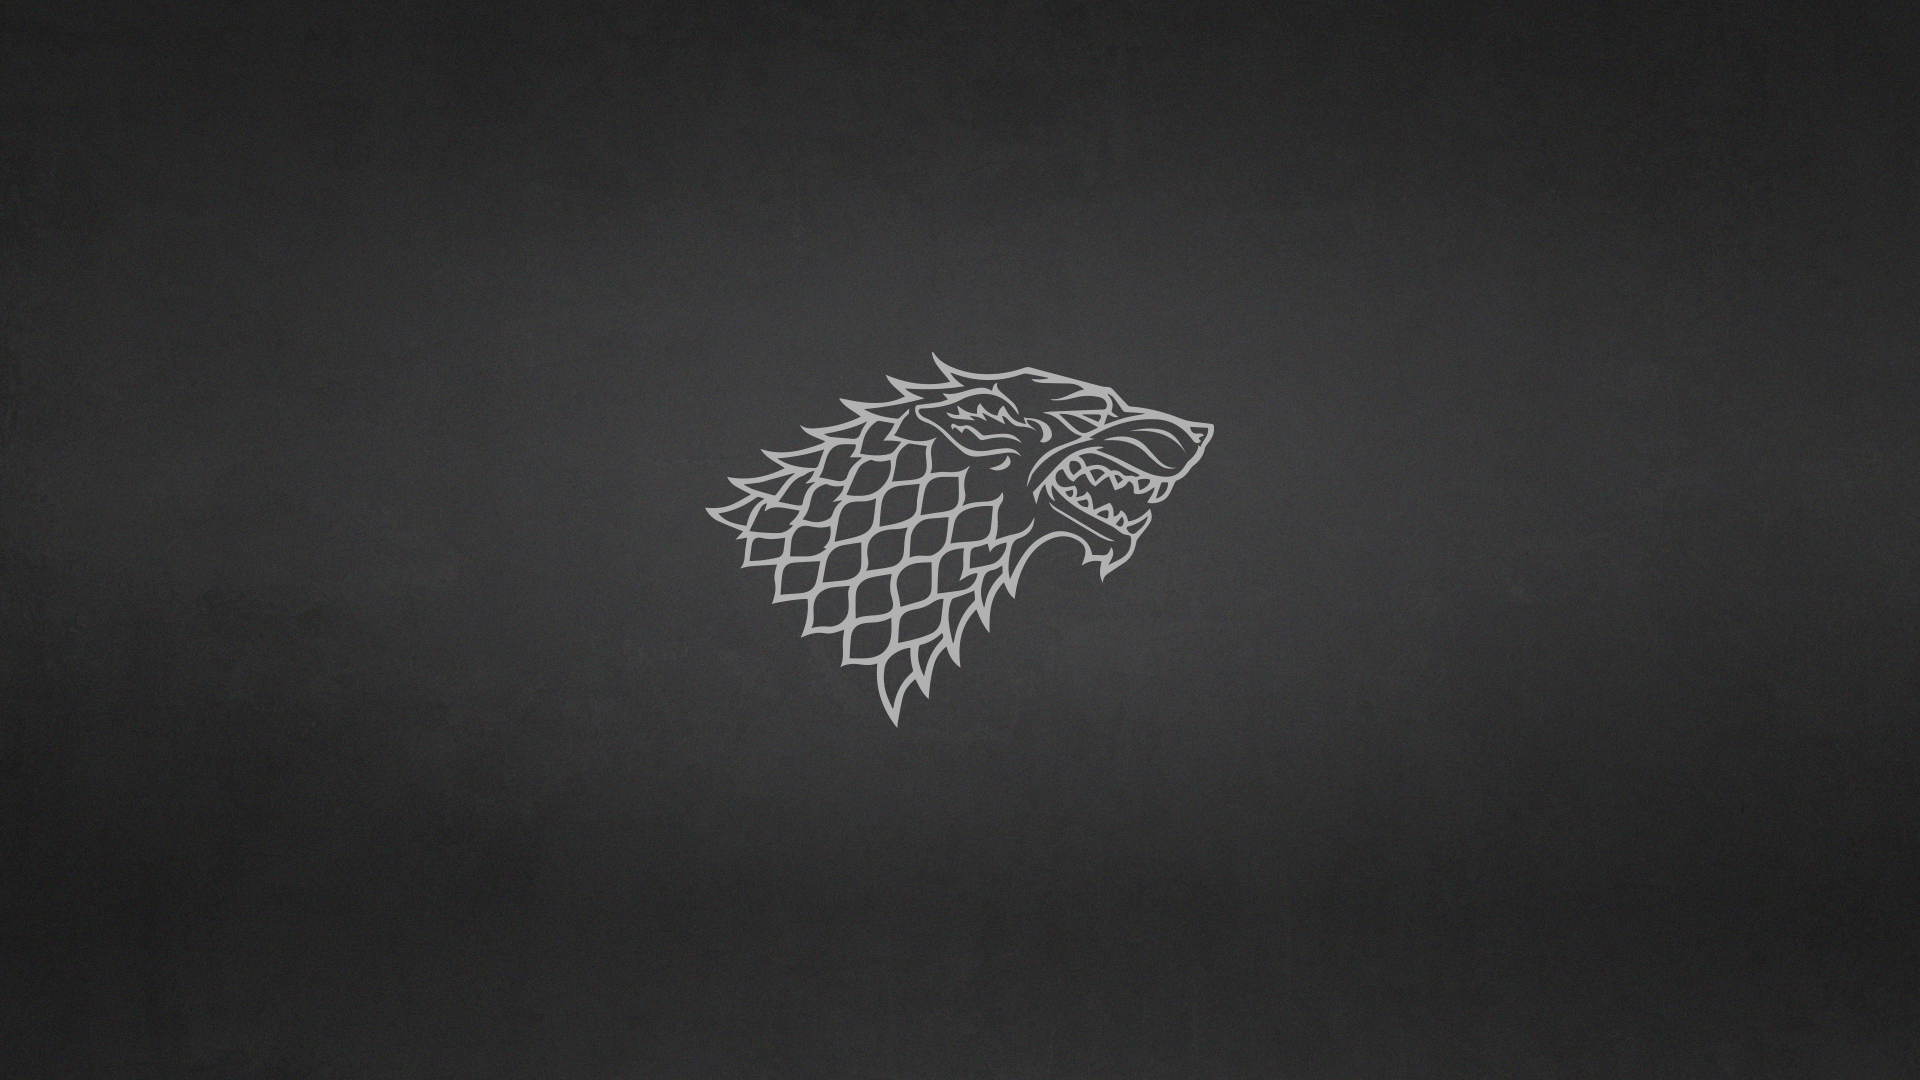 Game Of Thrones House Stark Minimalist Wallpaper By